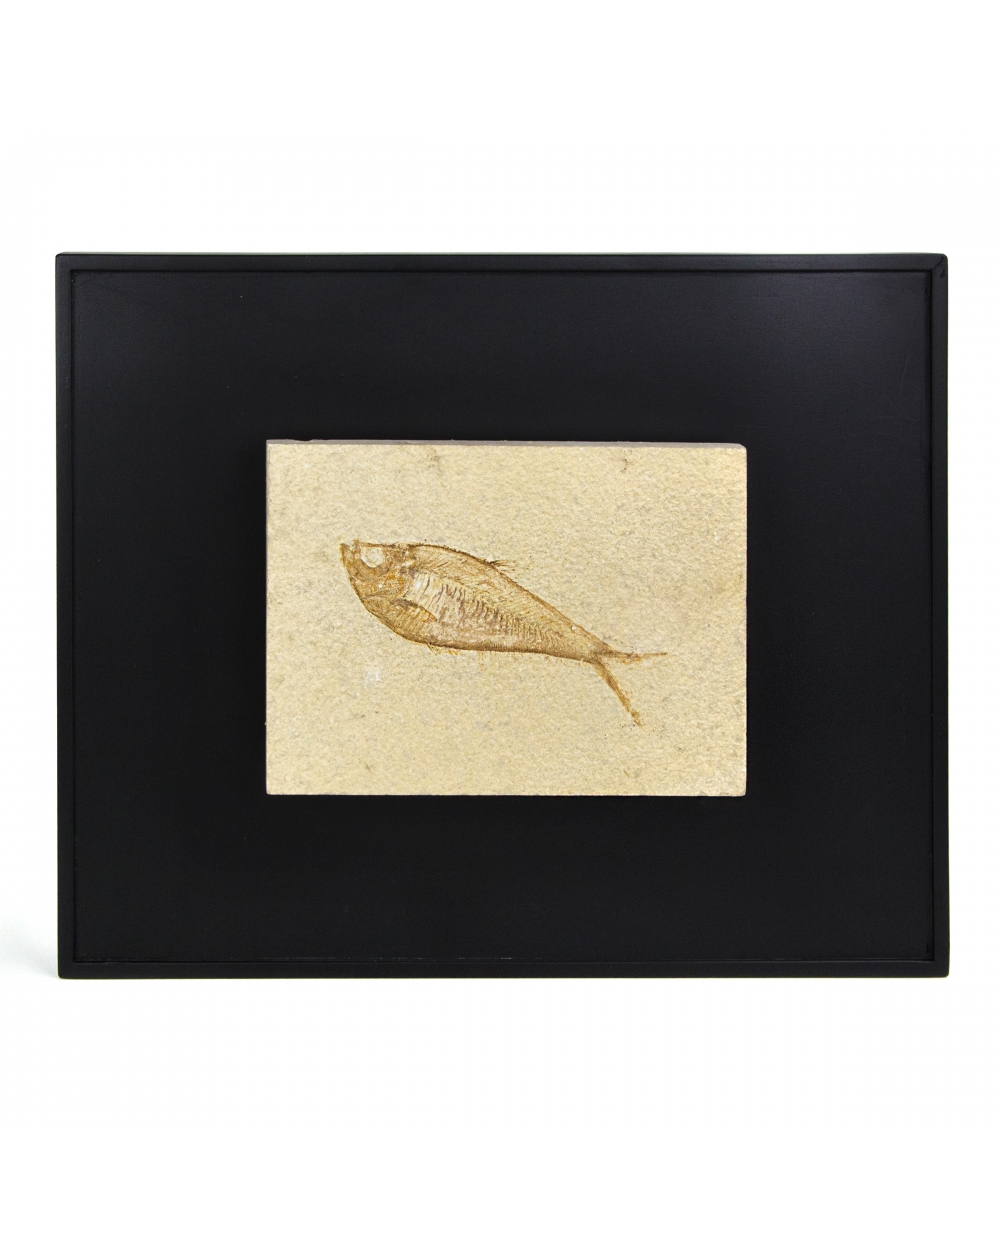 Framework with Wyoming Fossil Fish